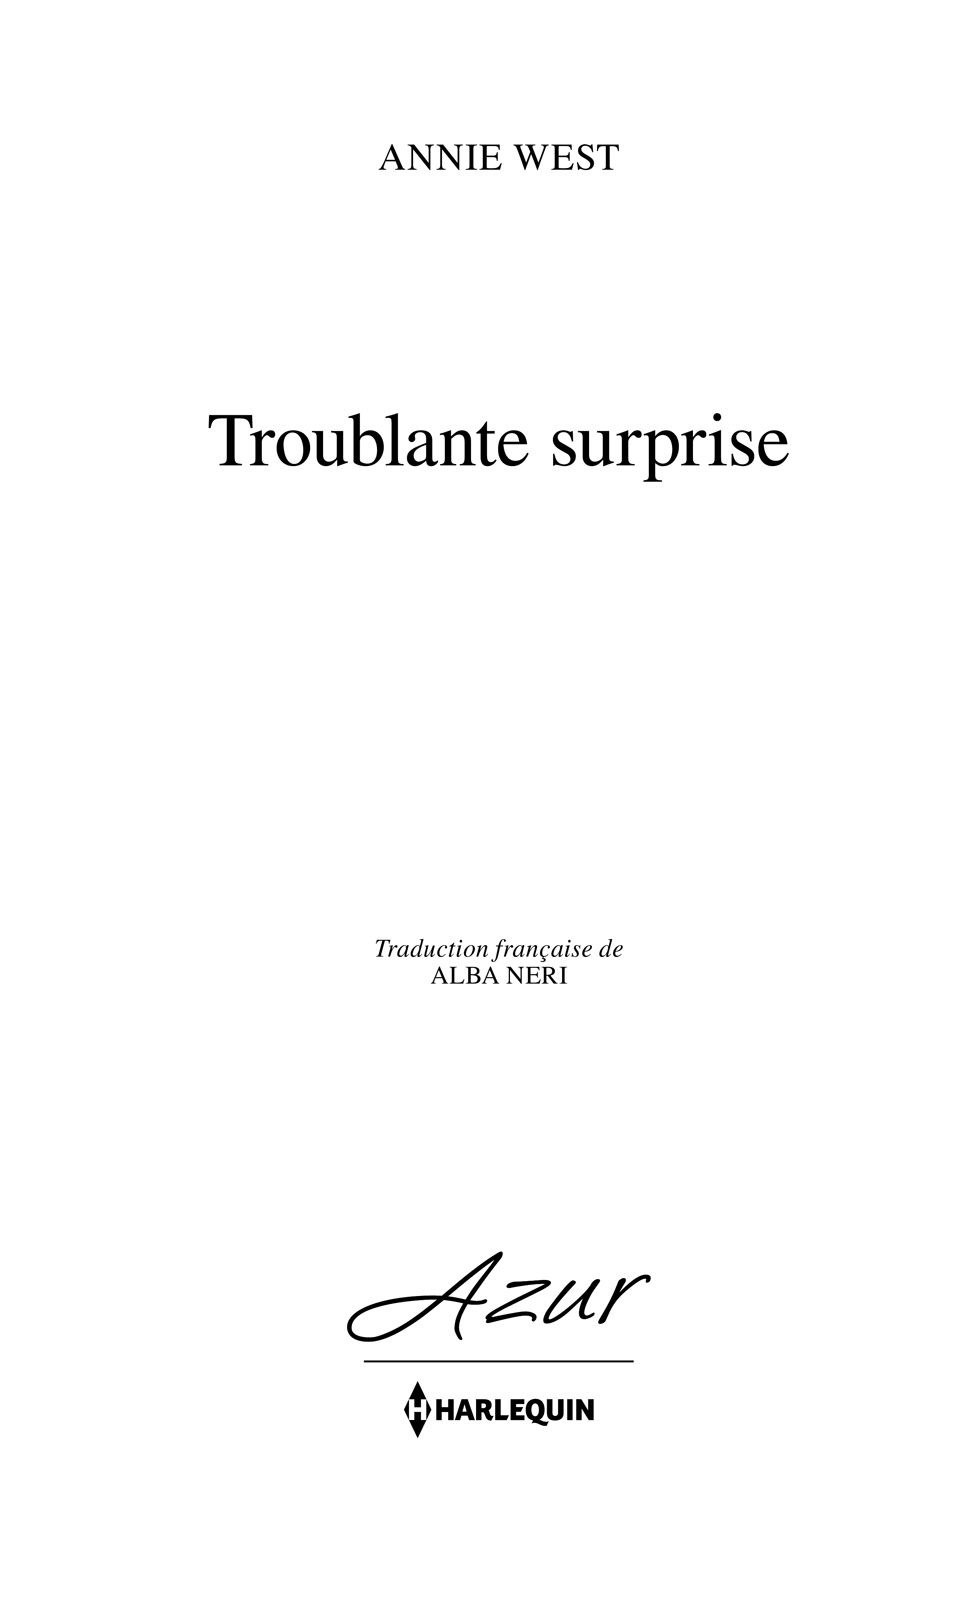 Page de titre : Annie West, Troublante surprise, Harlequin